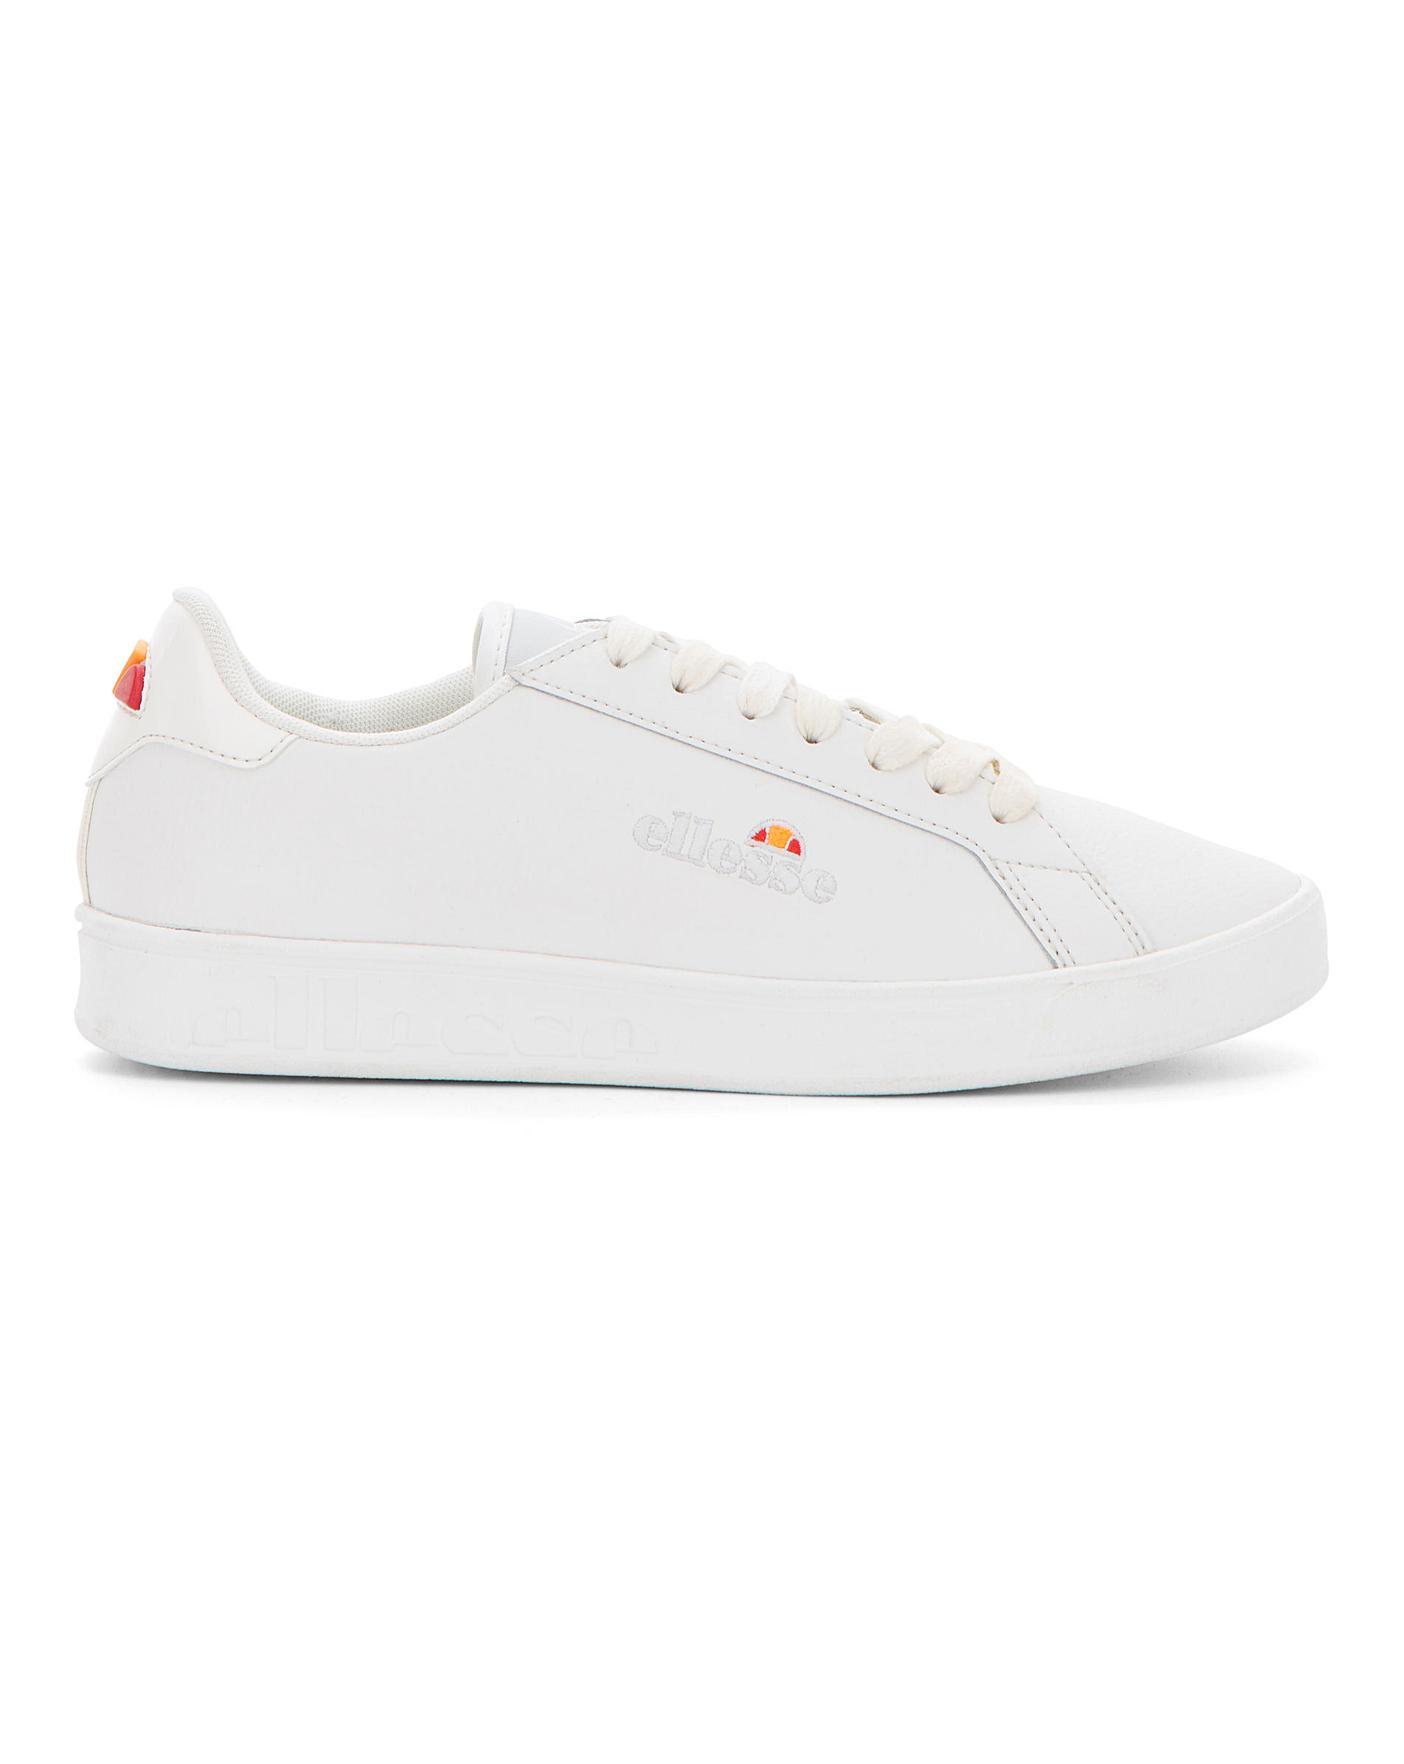 ellesse Campo Trainers | Simply Be